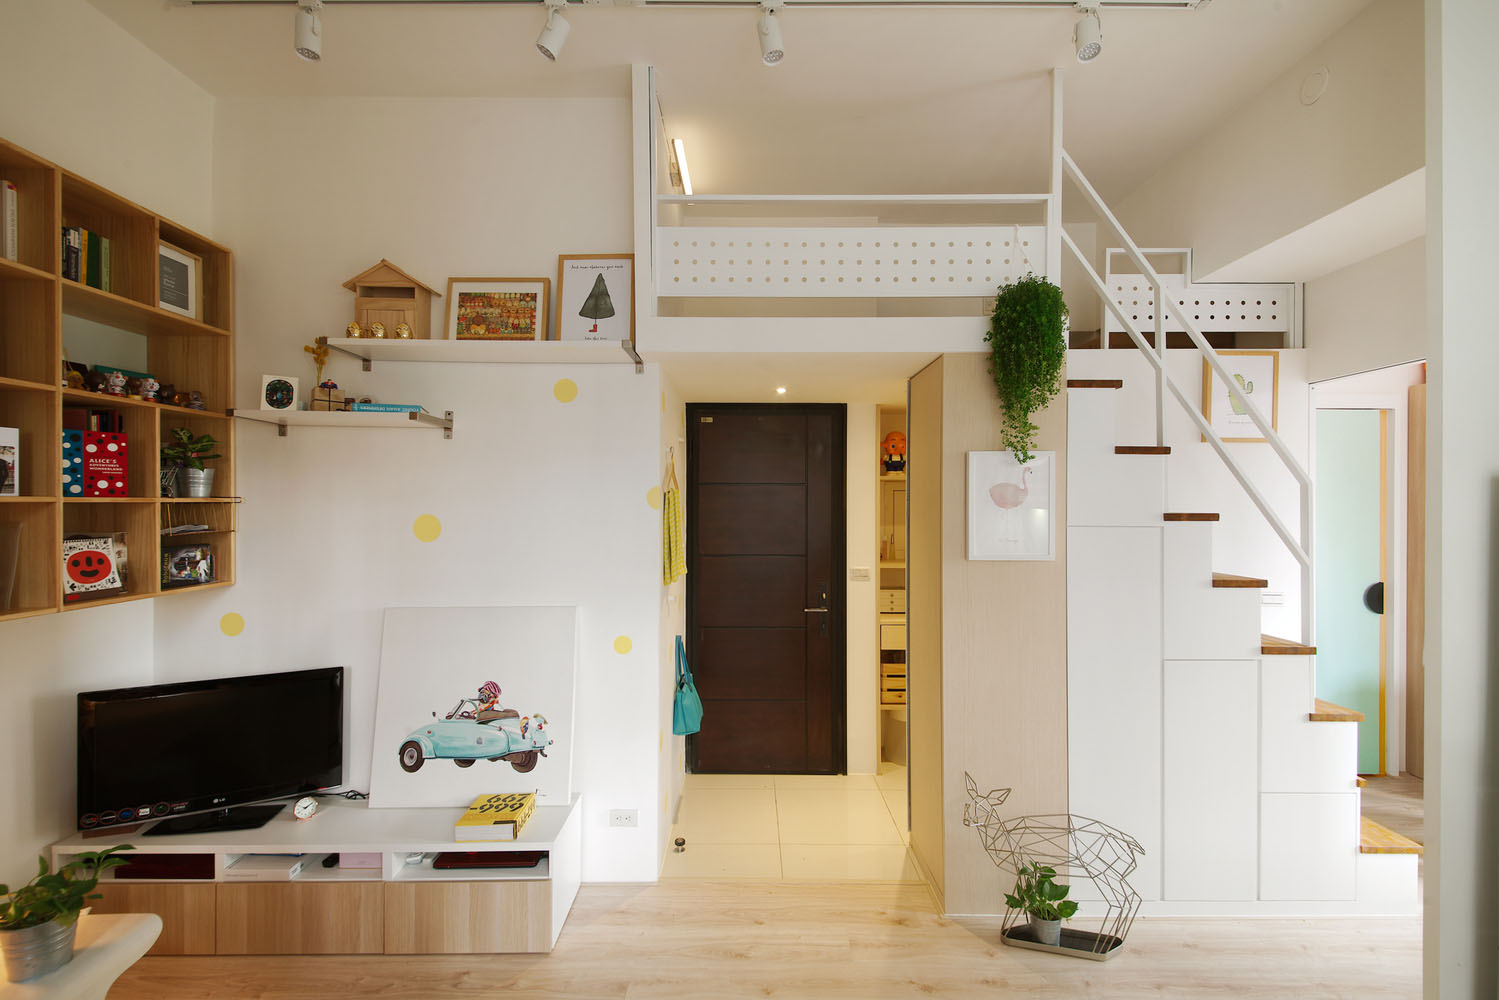 Redesigned Tiny Apartment With Loft Features A Brighter